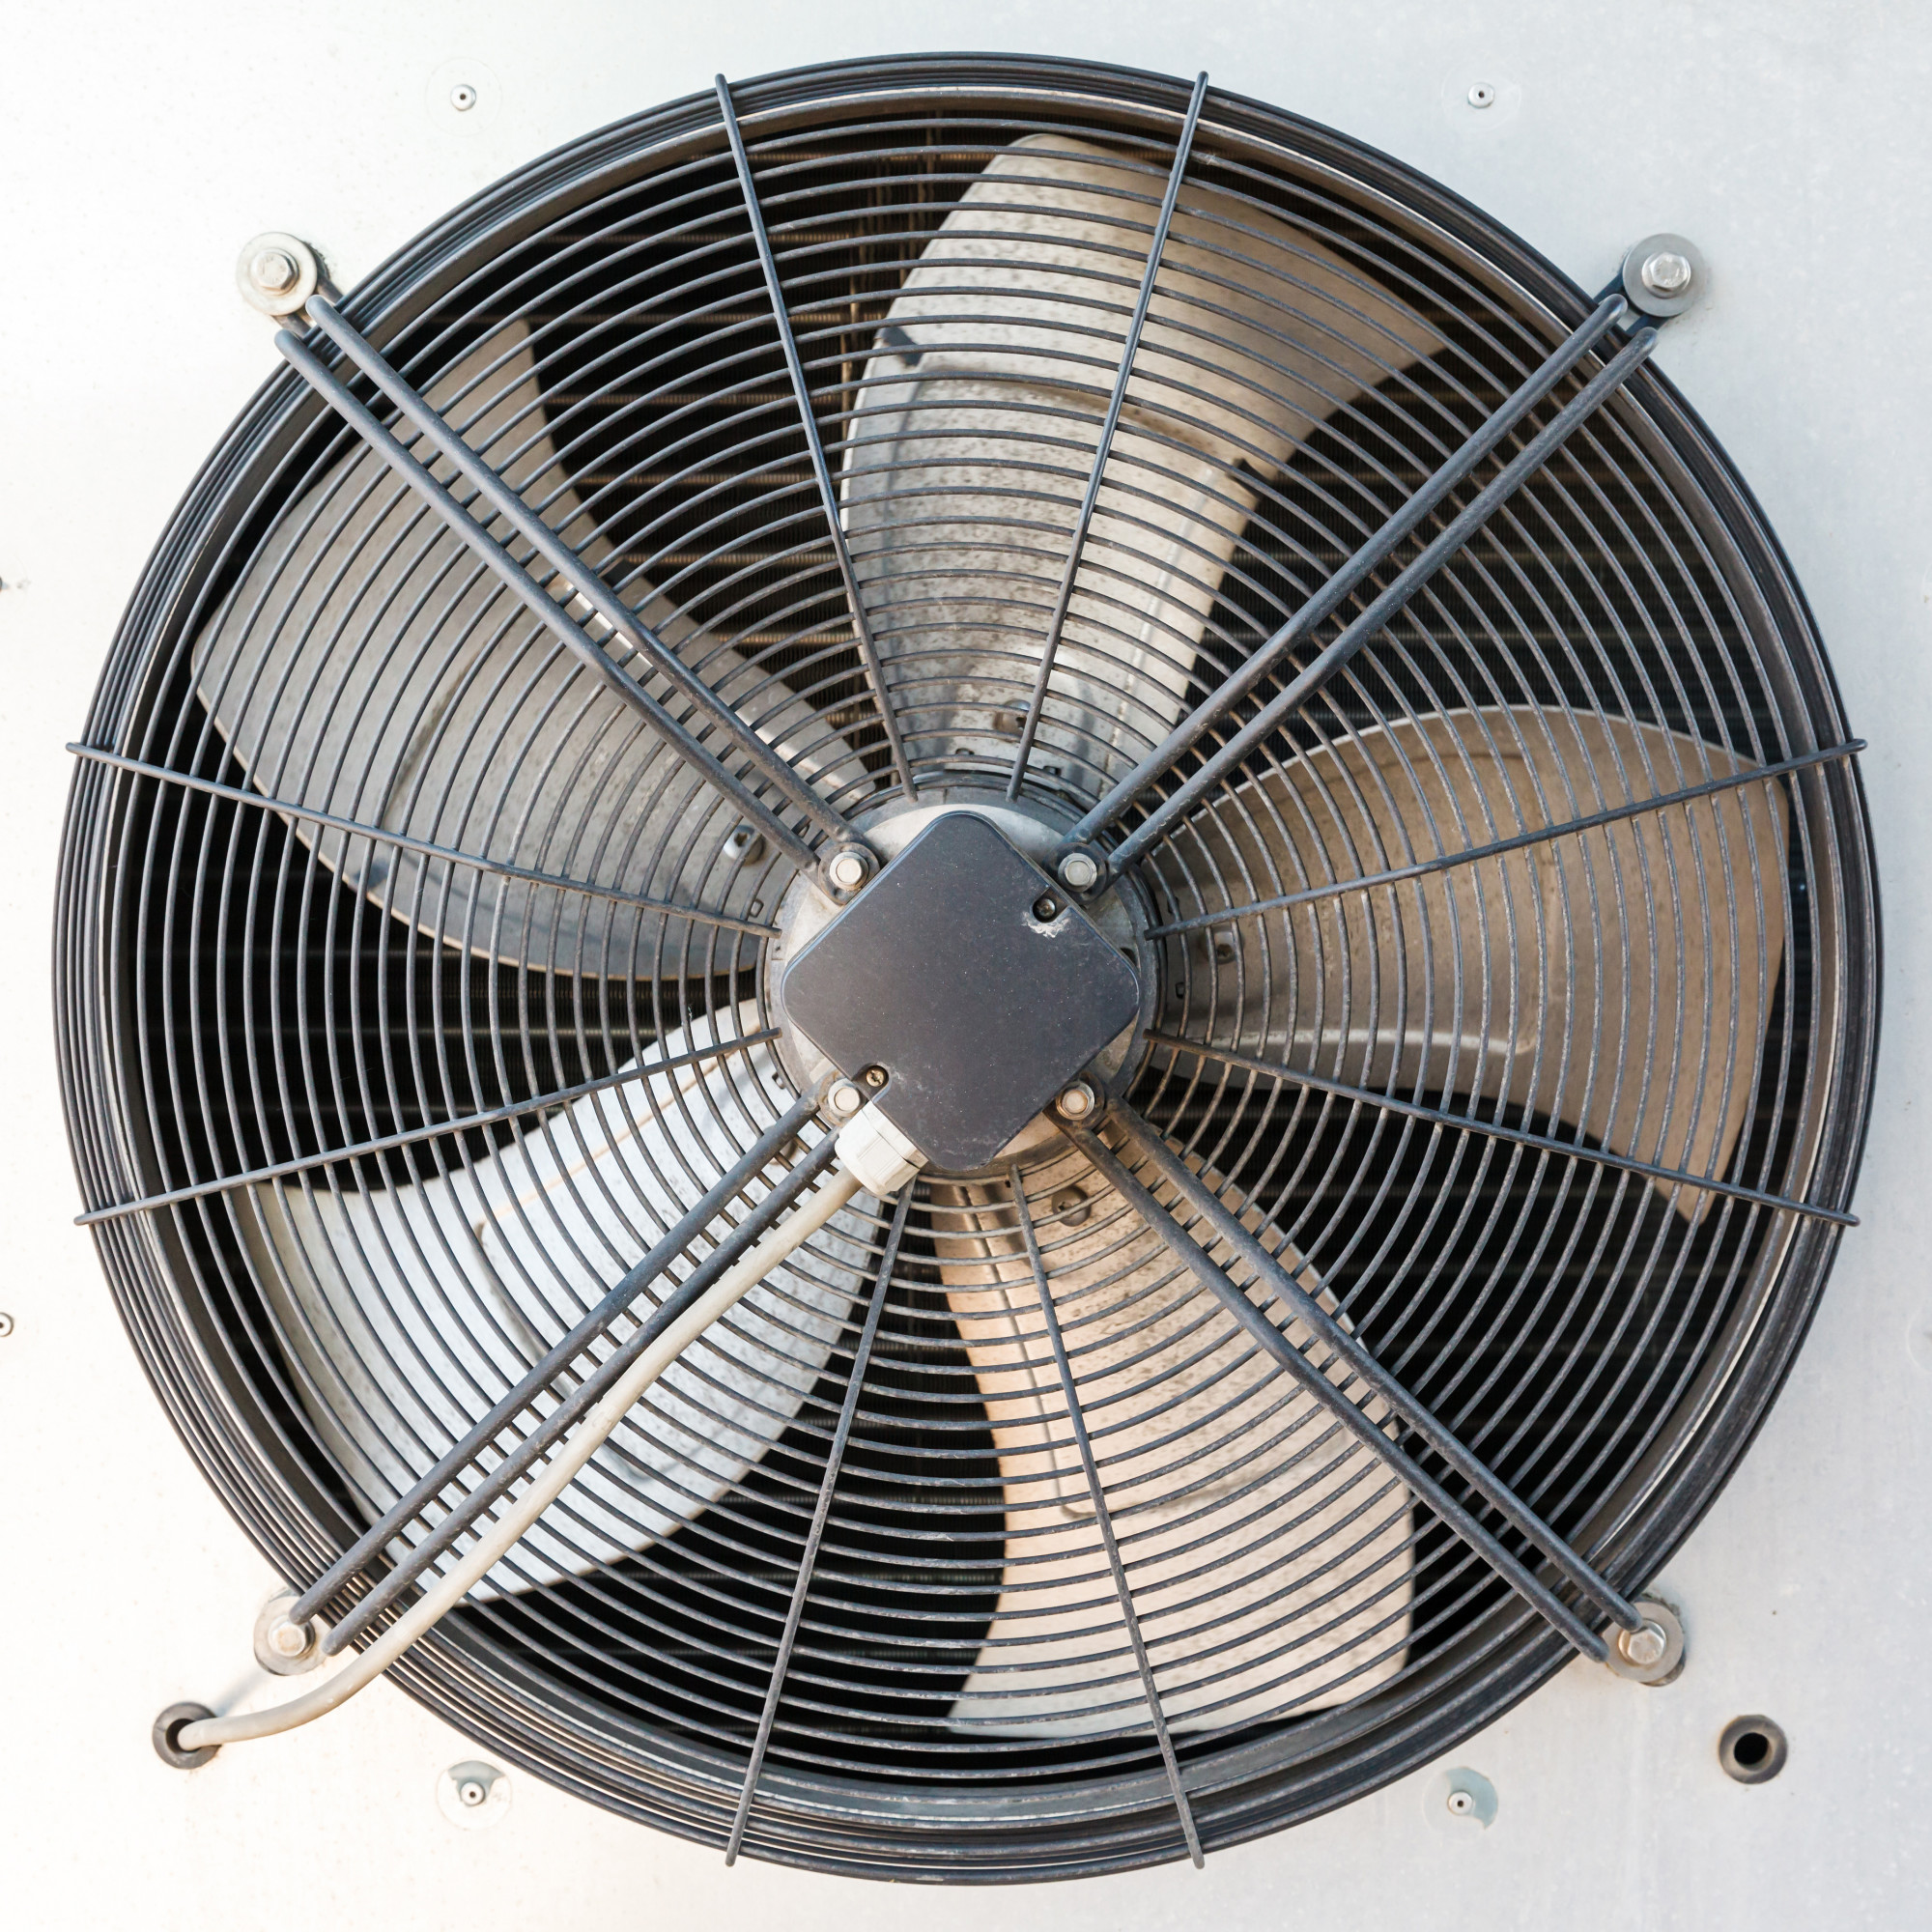 Axial Vs Centrifugal Fans The Big Differences That Matter